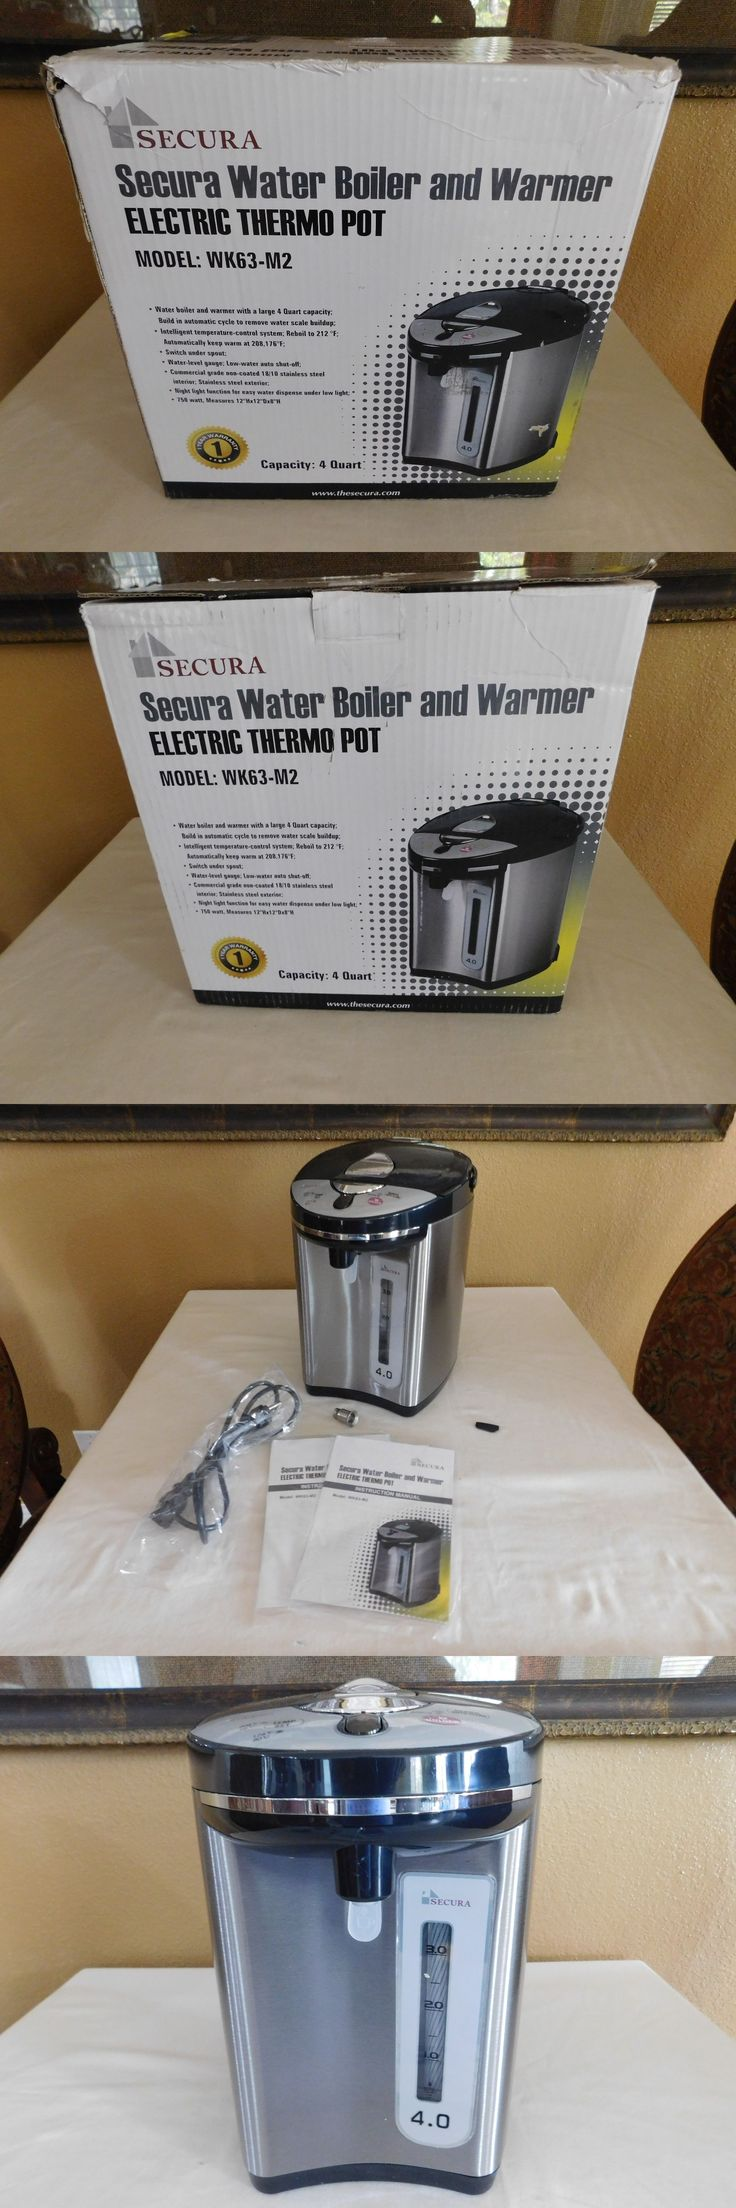 Hot Water Pots 177755: Secura Water Boiler And Warmer Electric Thermo Pot Wk-63-M2 -> BUY IT NOW ONLY: $59.95 on eBay!